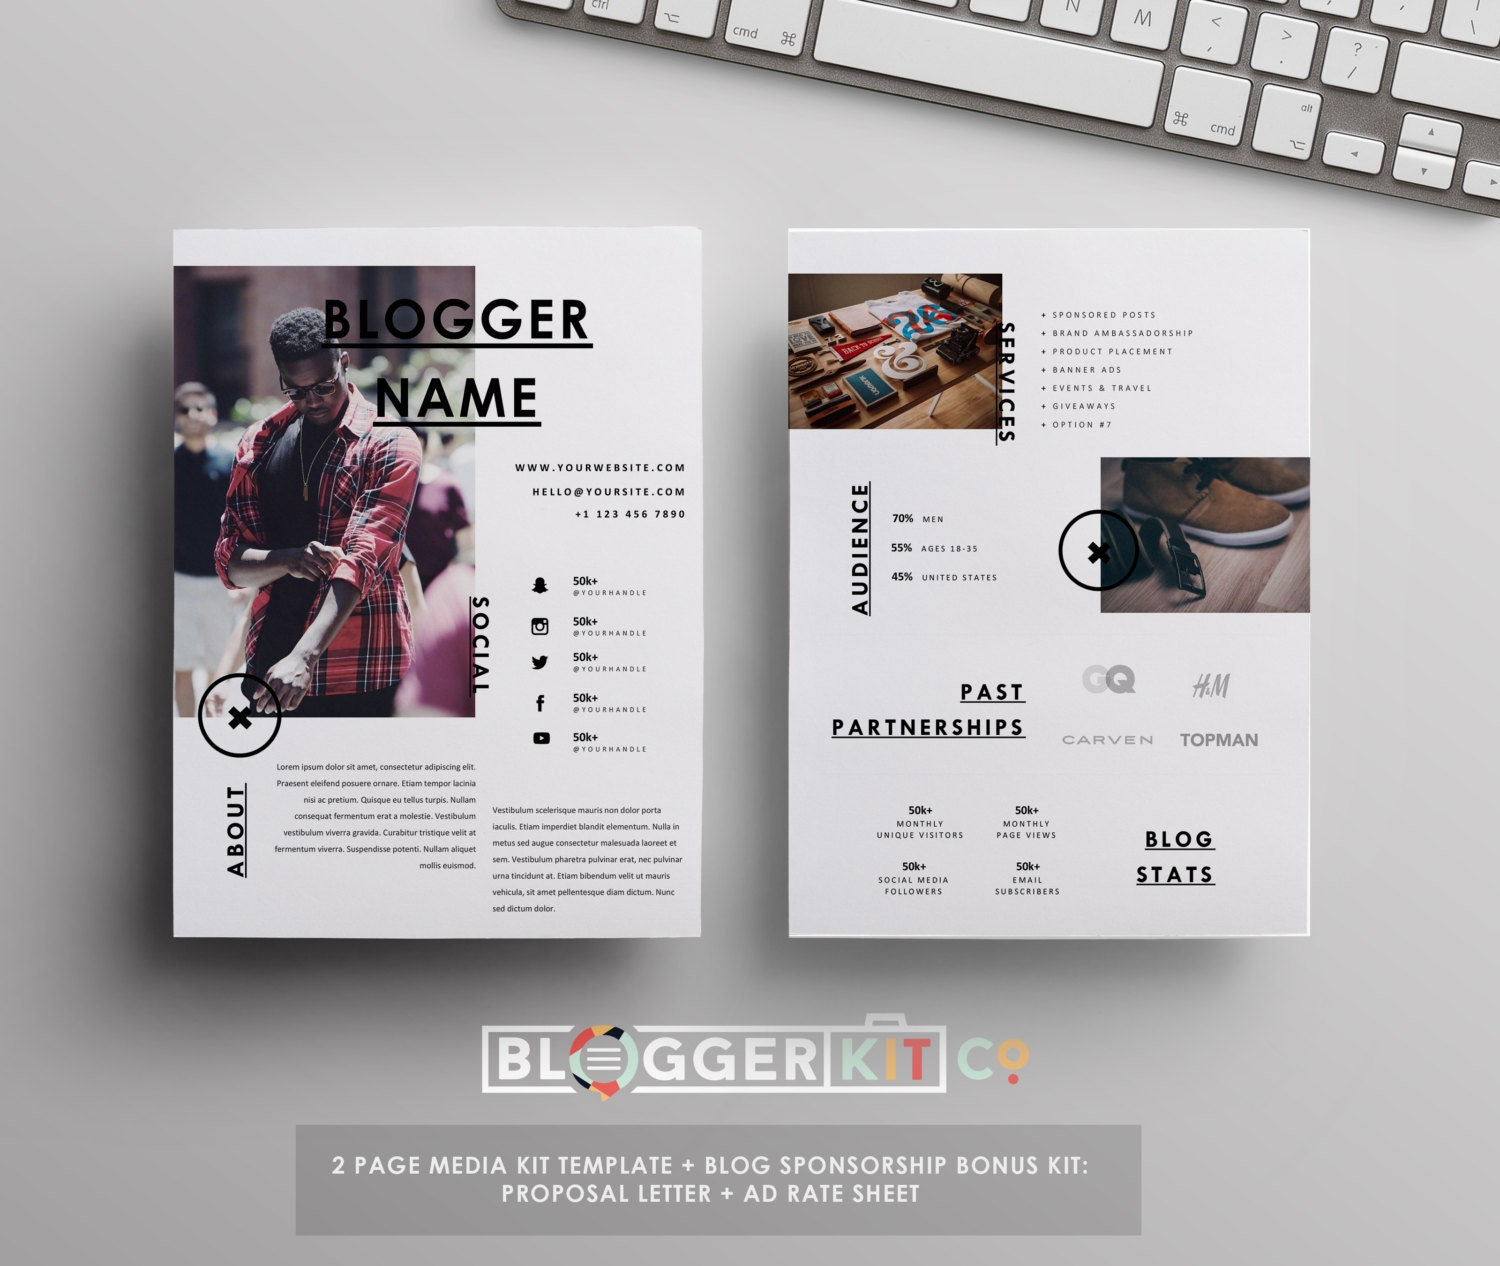 4 pg media kit template press kit template proposal letter for Press packet template